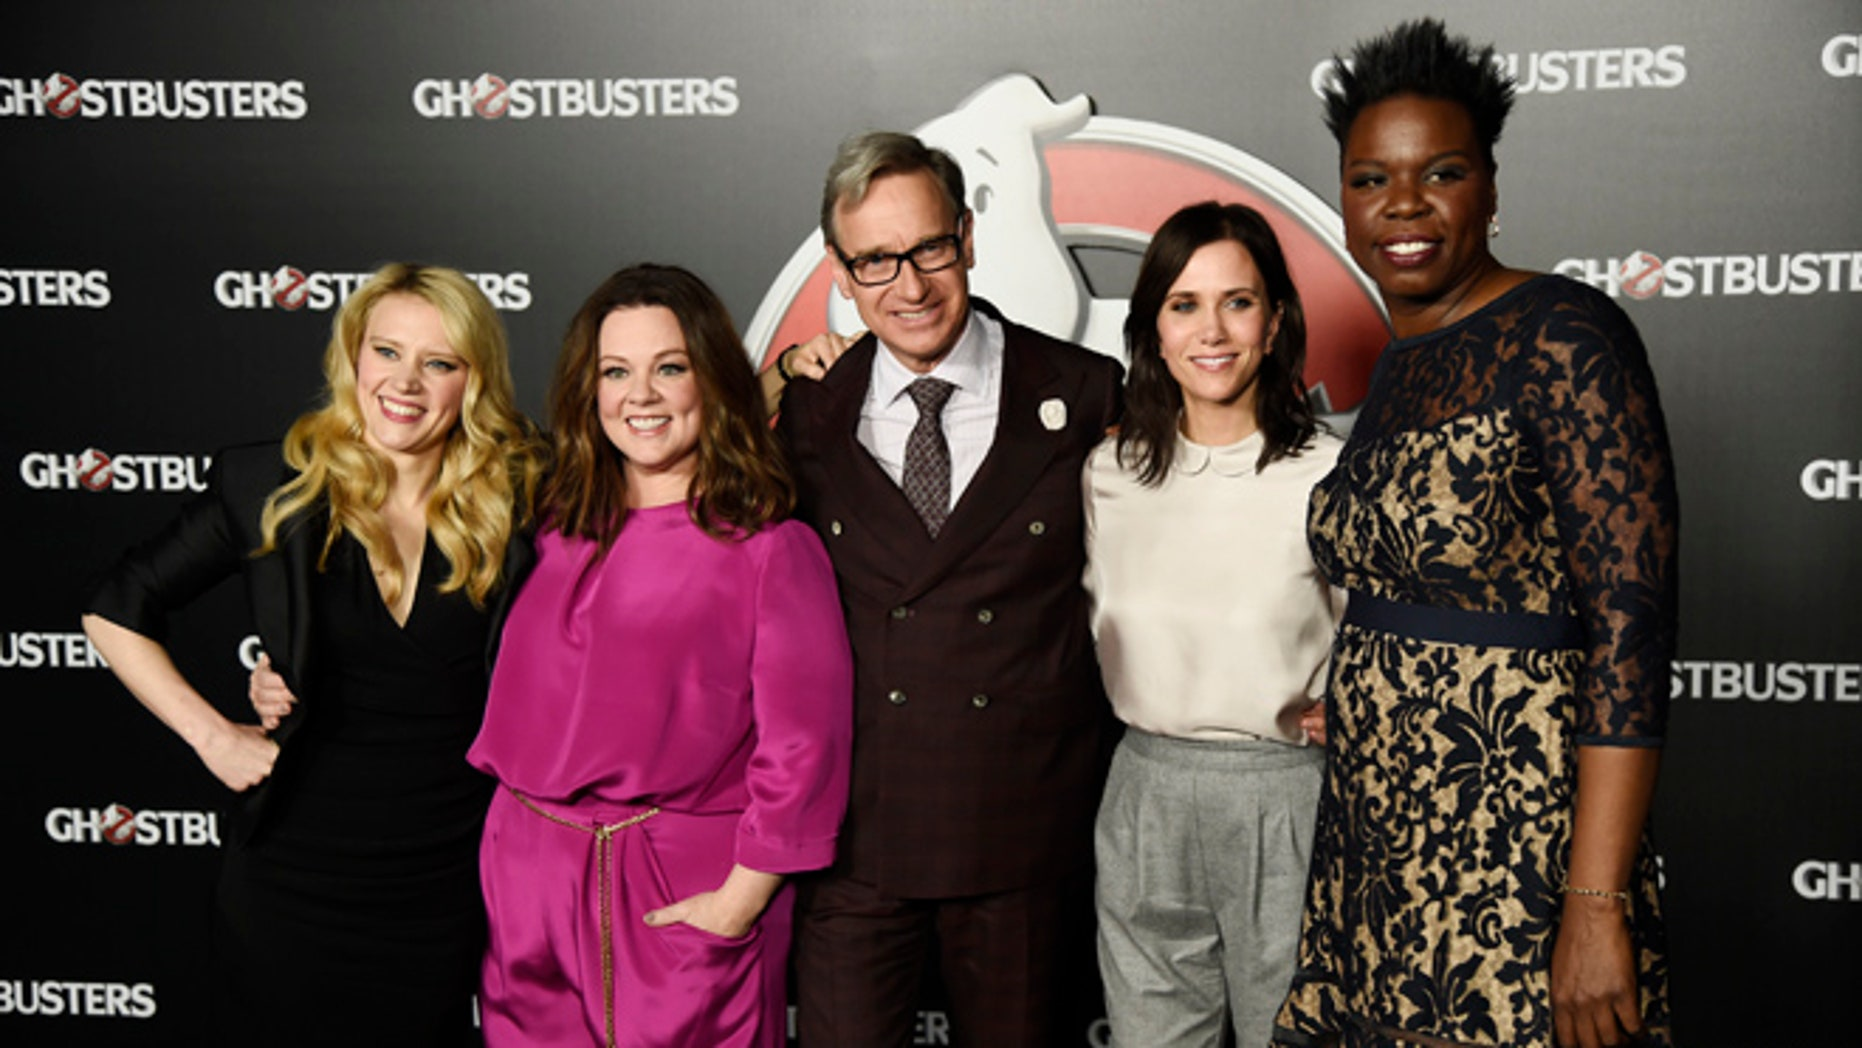 """FILE - In this April 12, 2016, file photo, director Paul Feig, center, poses with cast members, from left, Kate McKinnon, Melissa McCarthy, Kristen Wiig and Leslie Jones during the Sony Pictures Entertainment presentation of """"Ghostbusters,"""" at CinemaCon 2016 in Las Vegas. The film will be released nationwide on Friday, July 15. (Photo by Chris Pizzello/Invision/AP, File)"""